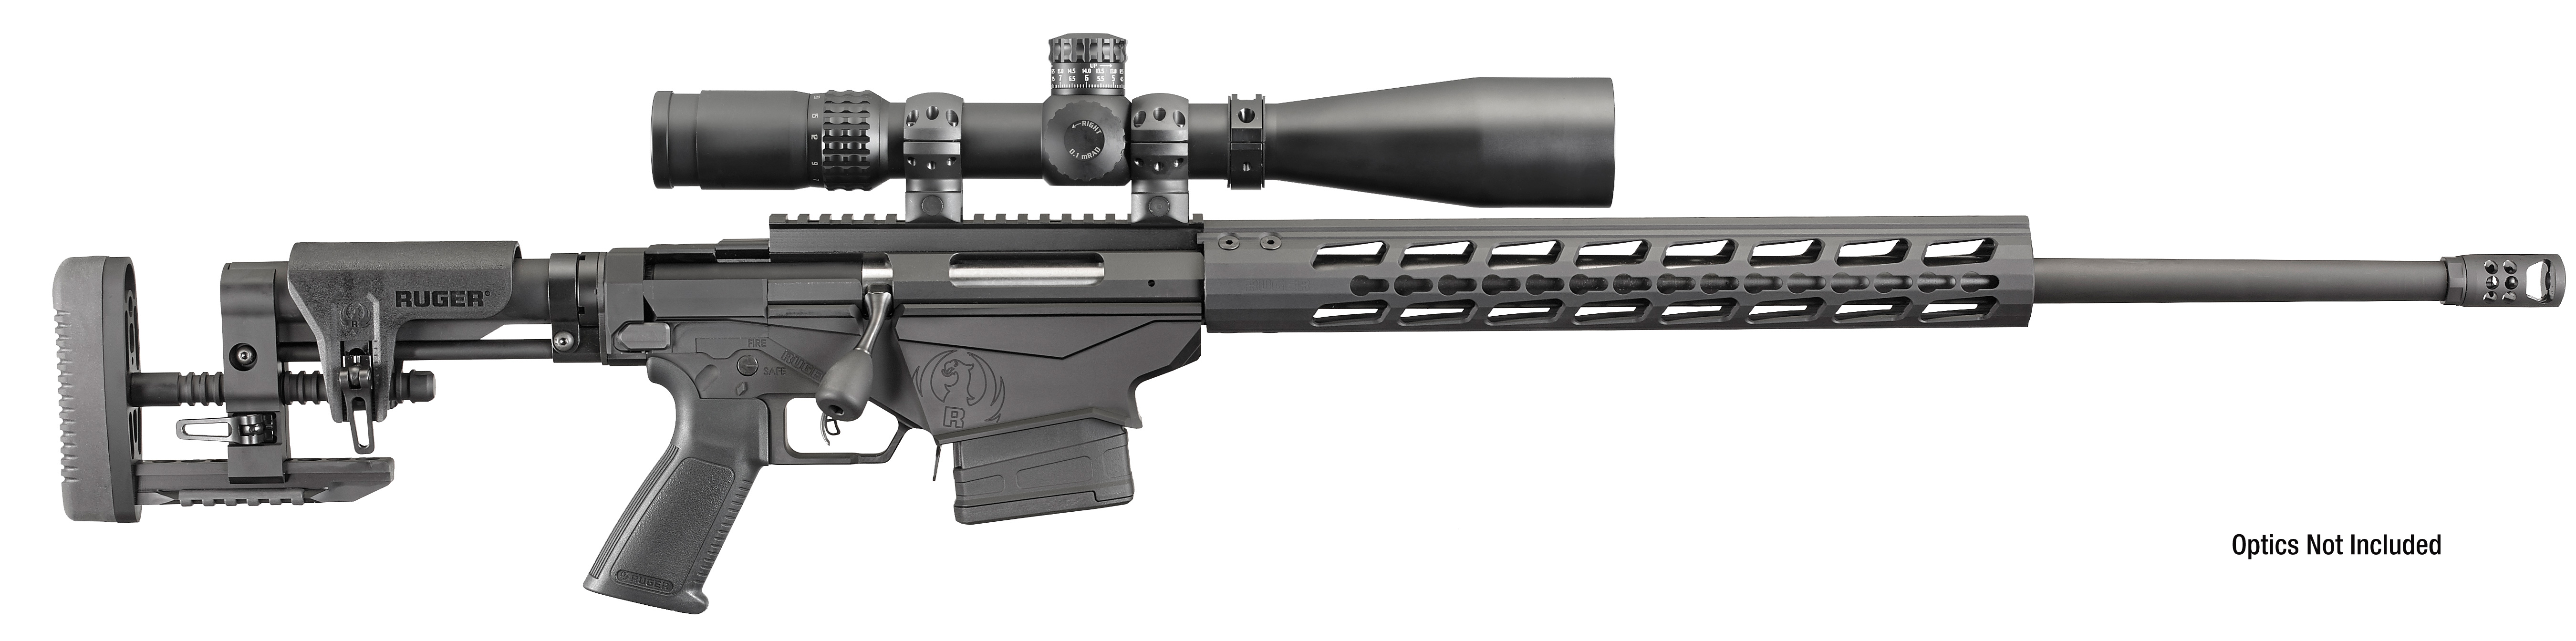 Ruger Precision Rifle - .308 Win. Gen 2